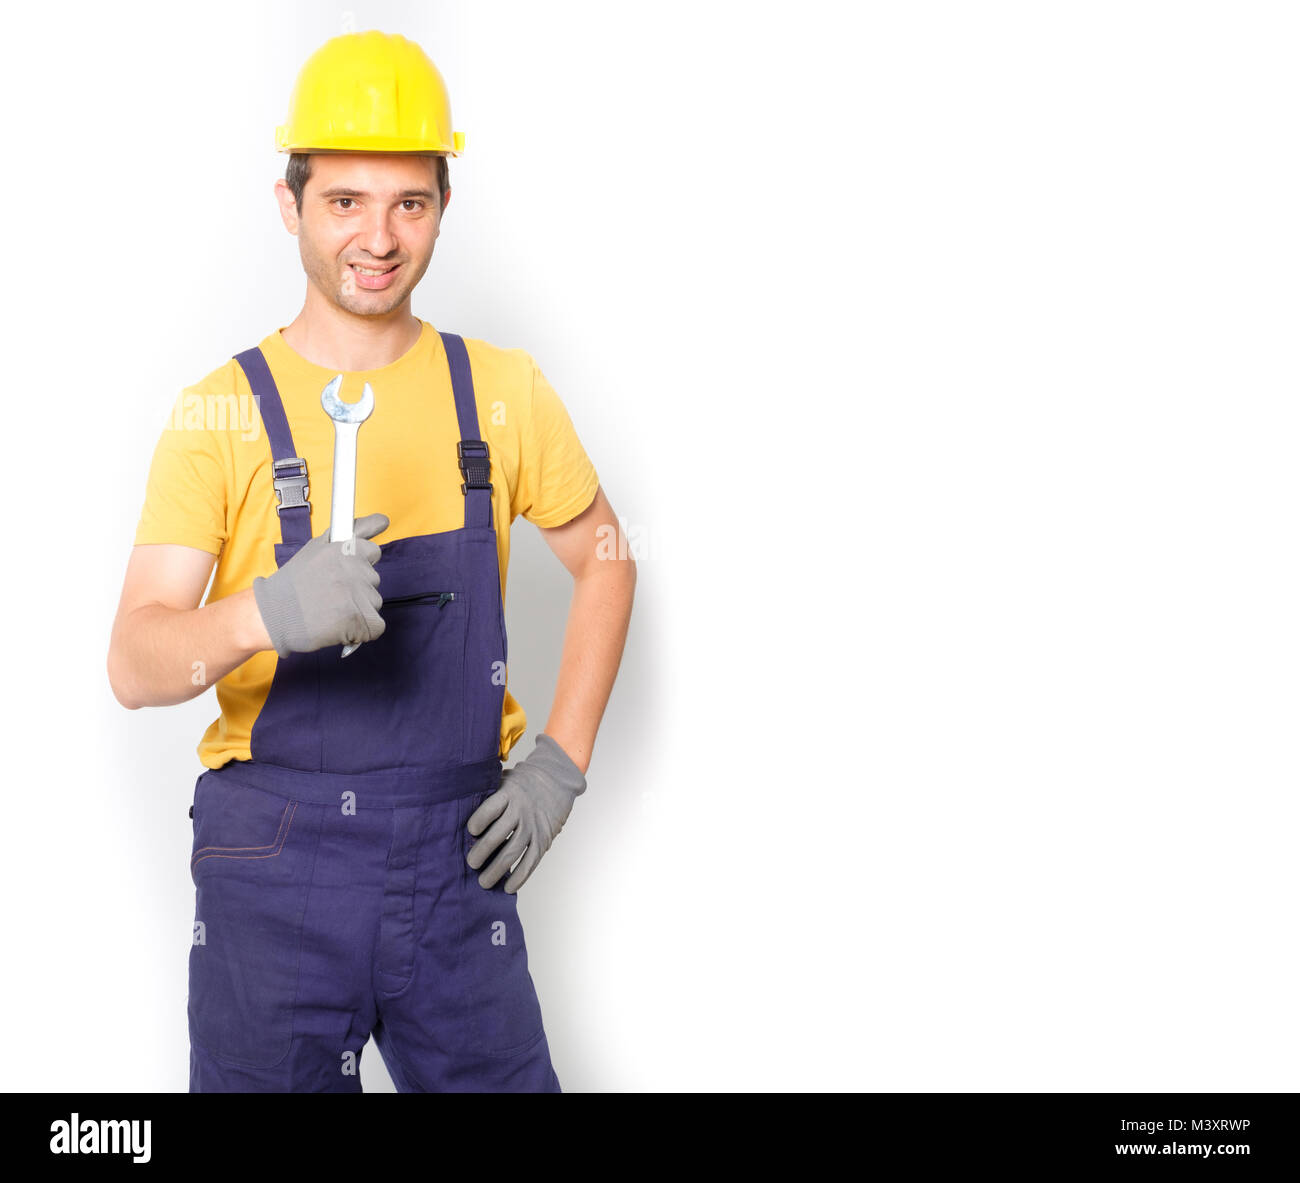 Worker mechanic holding a wrench  isolated on white background - Stock Image